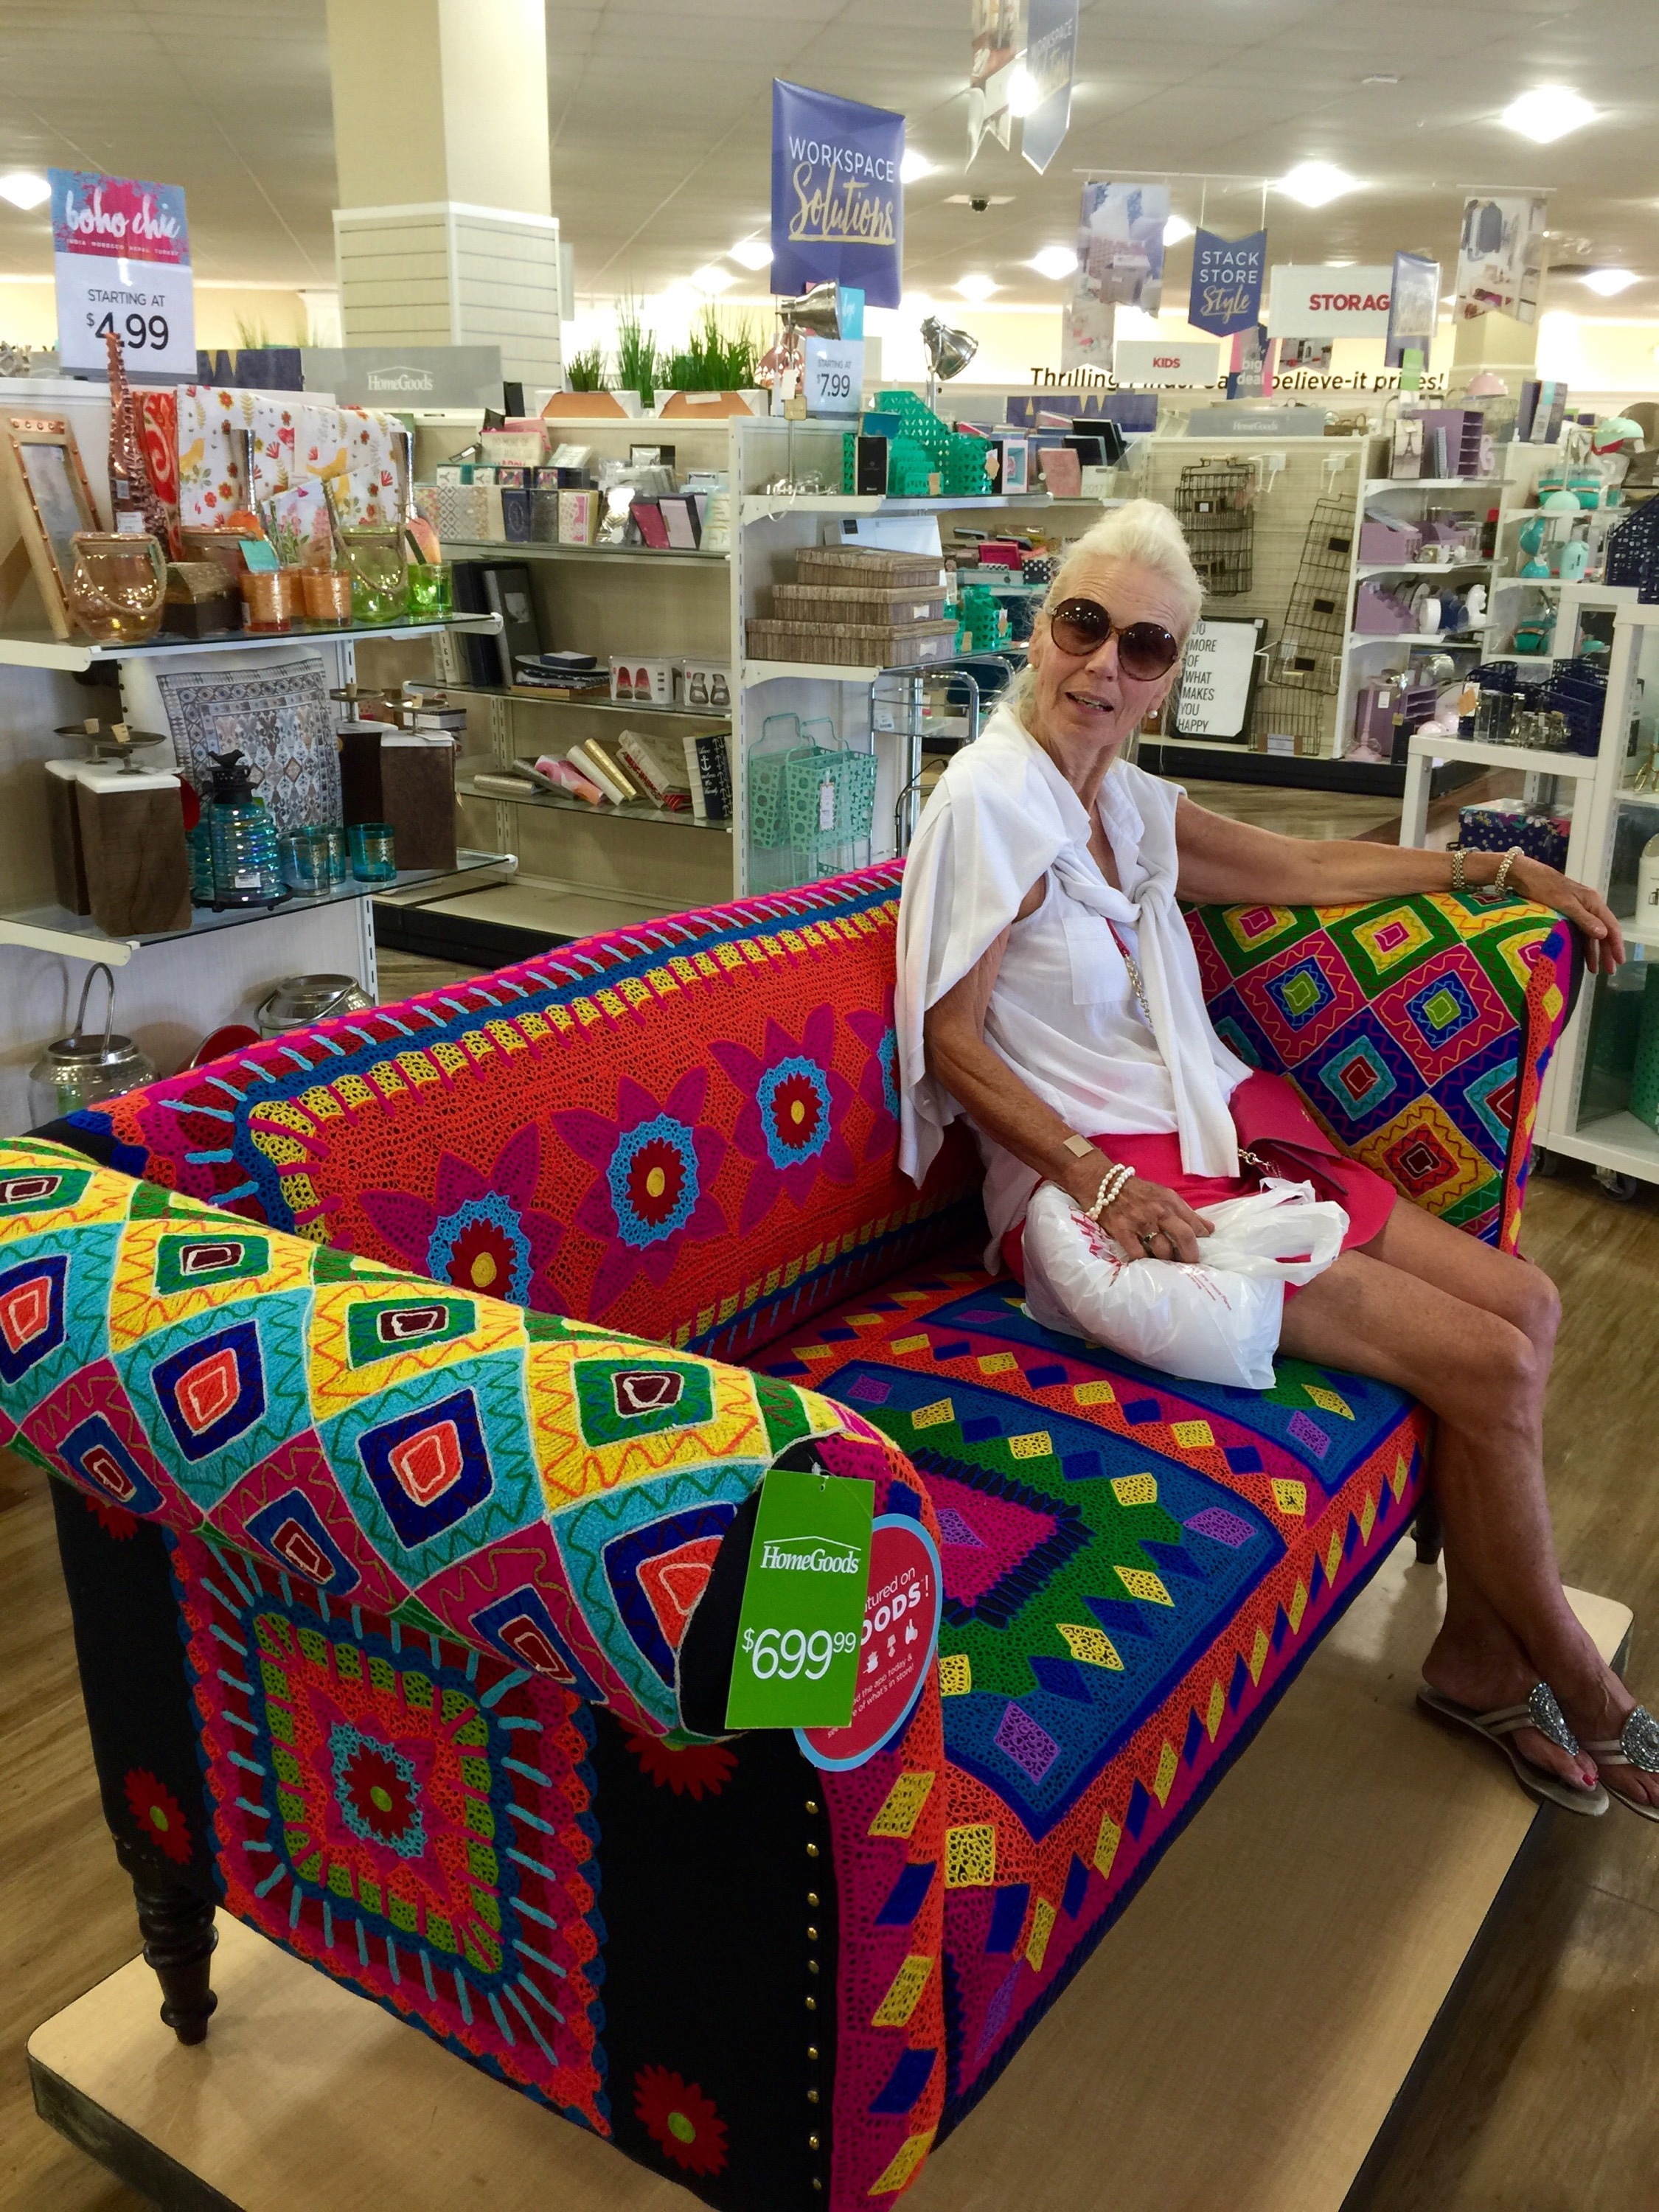 I call this work of haphazard art  Classy Lady on Funky Sofa at Home Goods. Home Goods   Praying for Eyebrowz